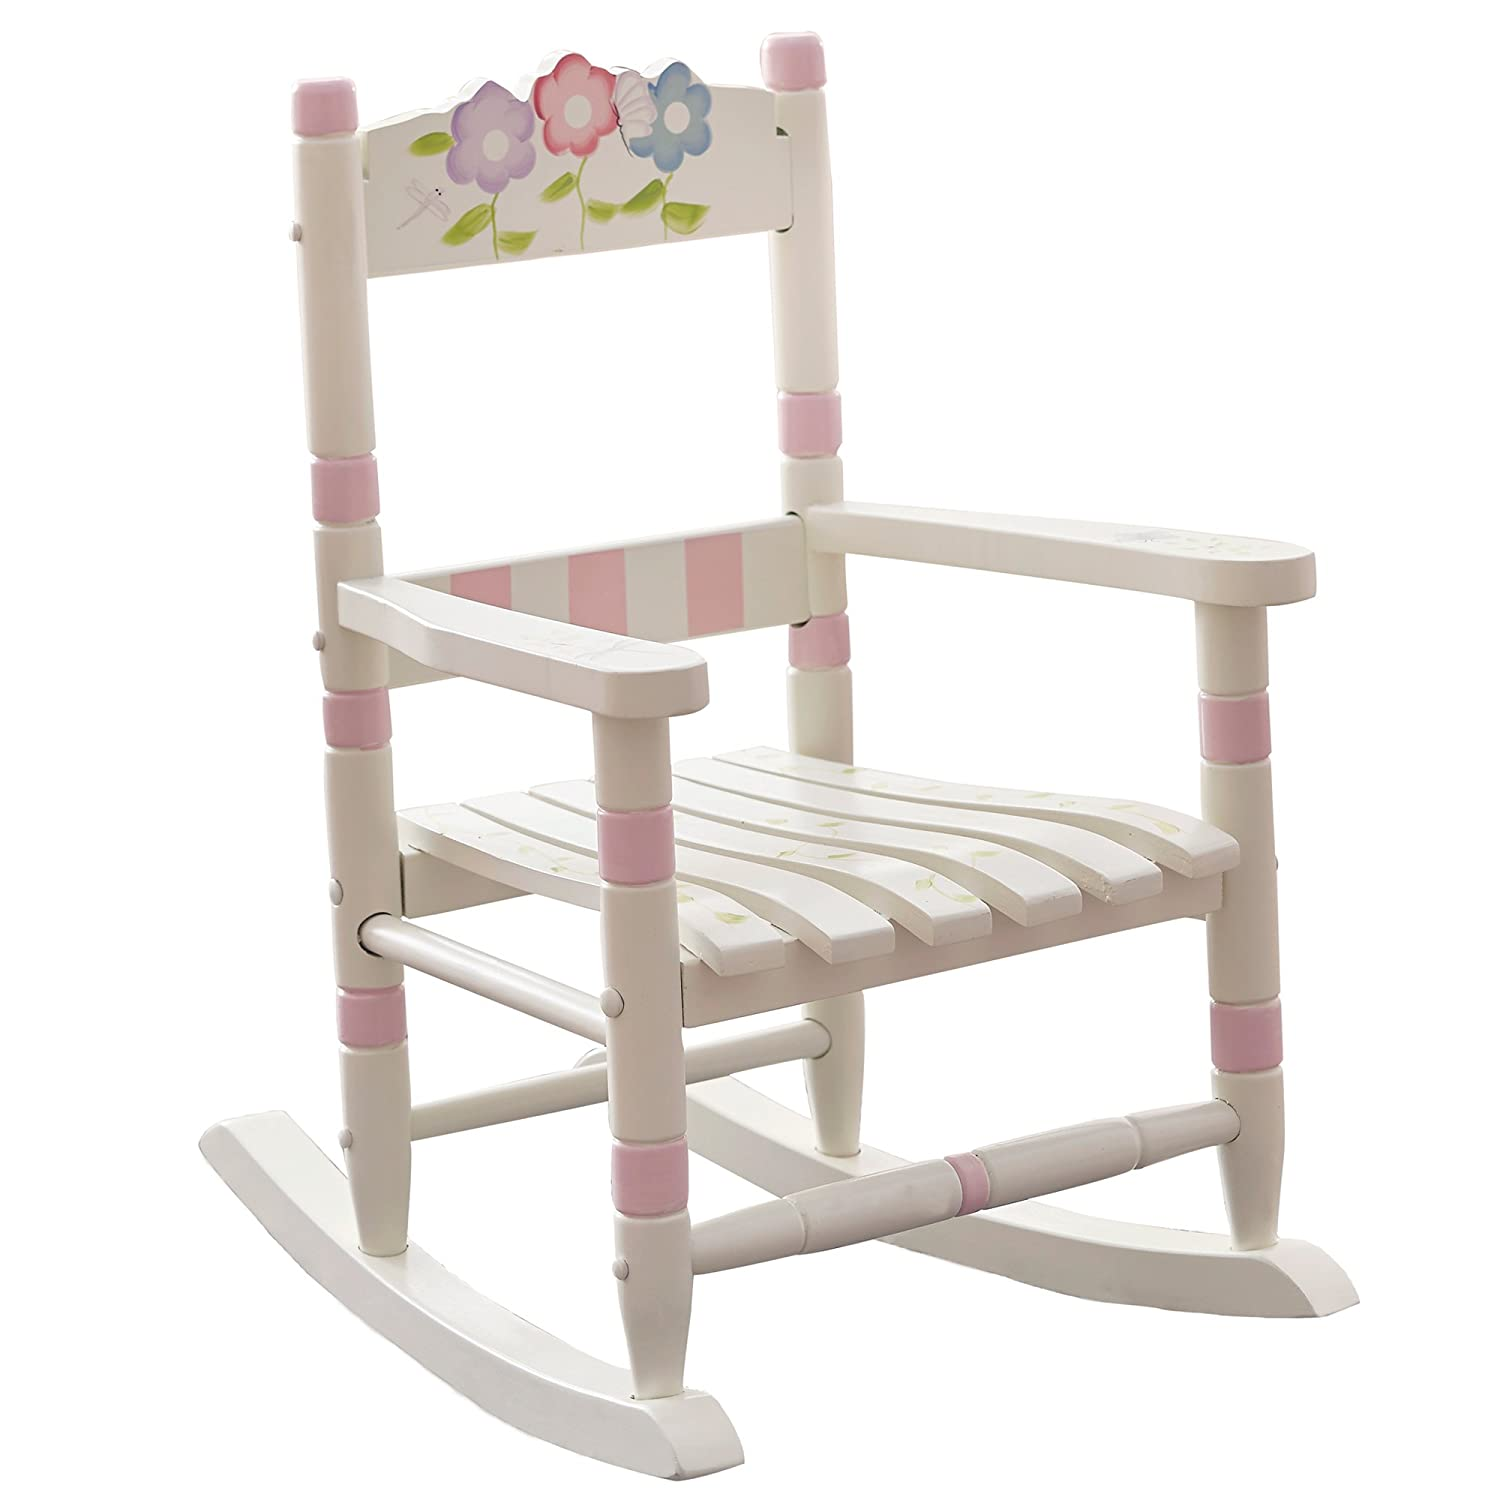 Rocking chair coloring page free rocking chair online coloring - Amazon Com Fantasy Fields Bouquet Thematic Kids Wooden Rocking Chair Imagination Inspiring Hand Crafted Hand Painted Details Non Toxic Lead Free